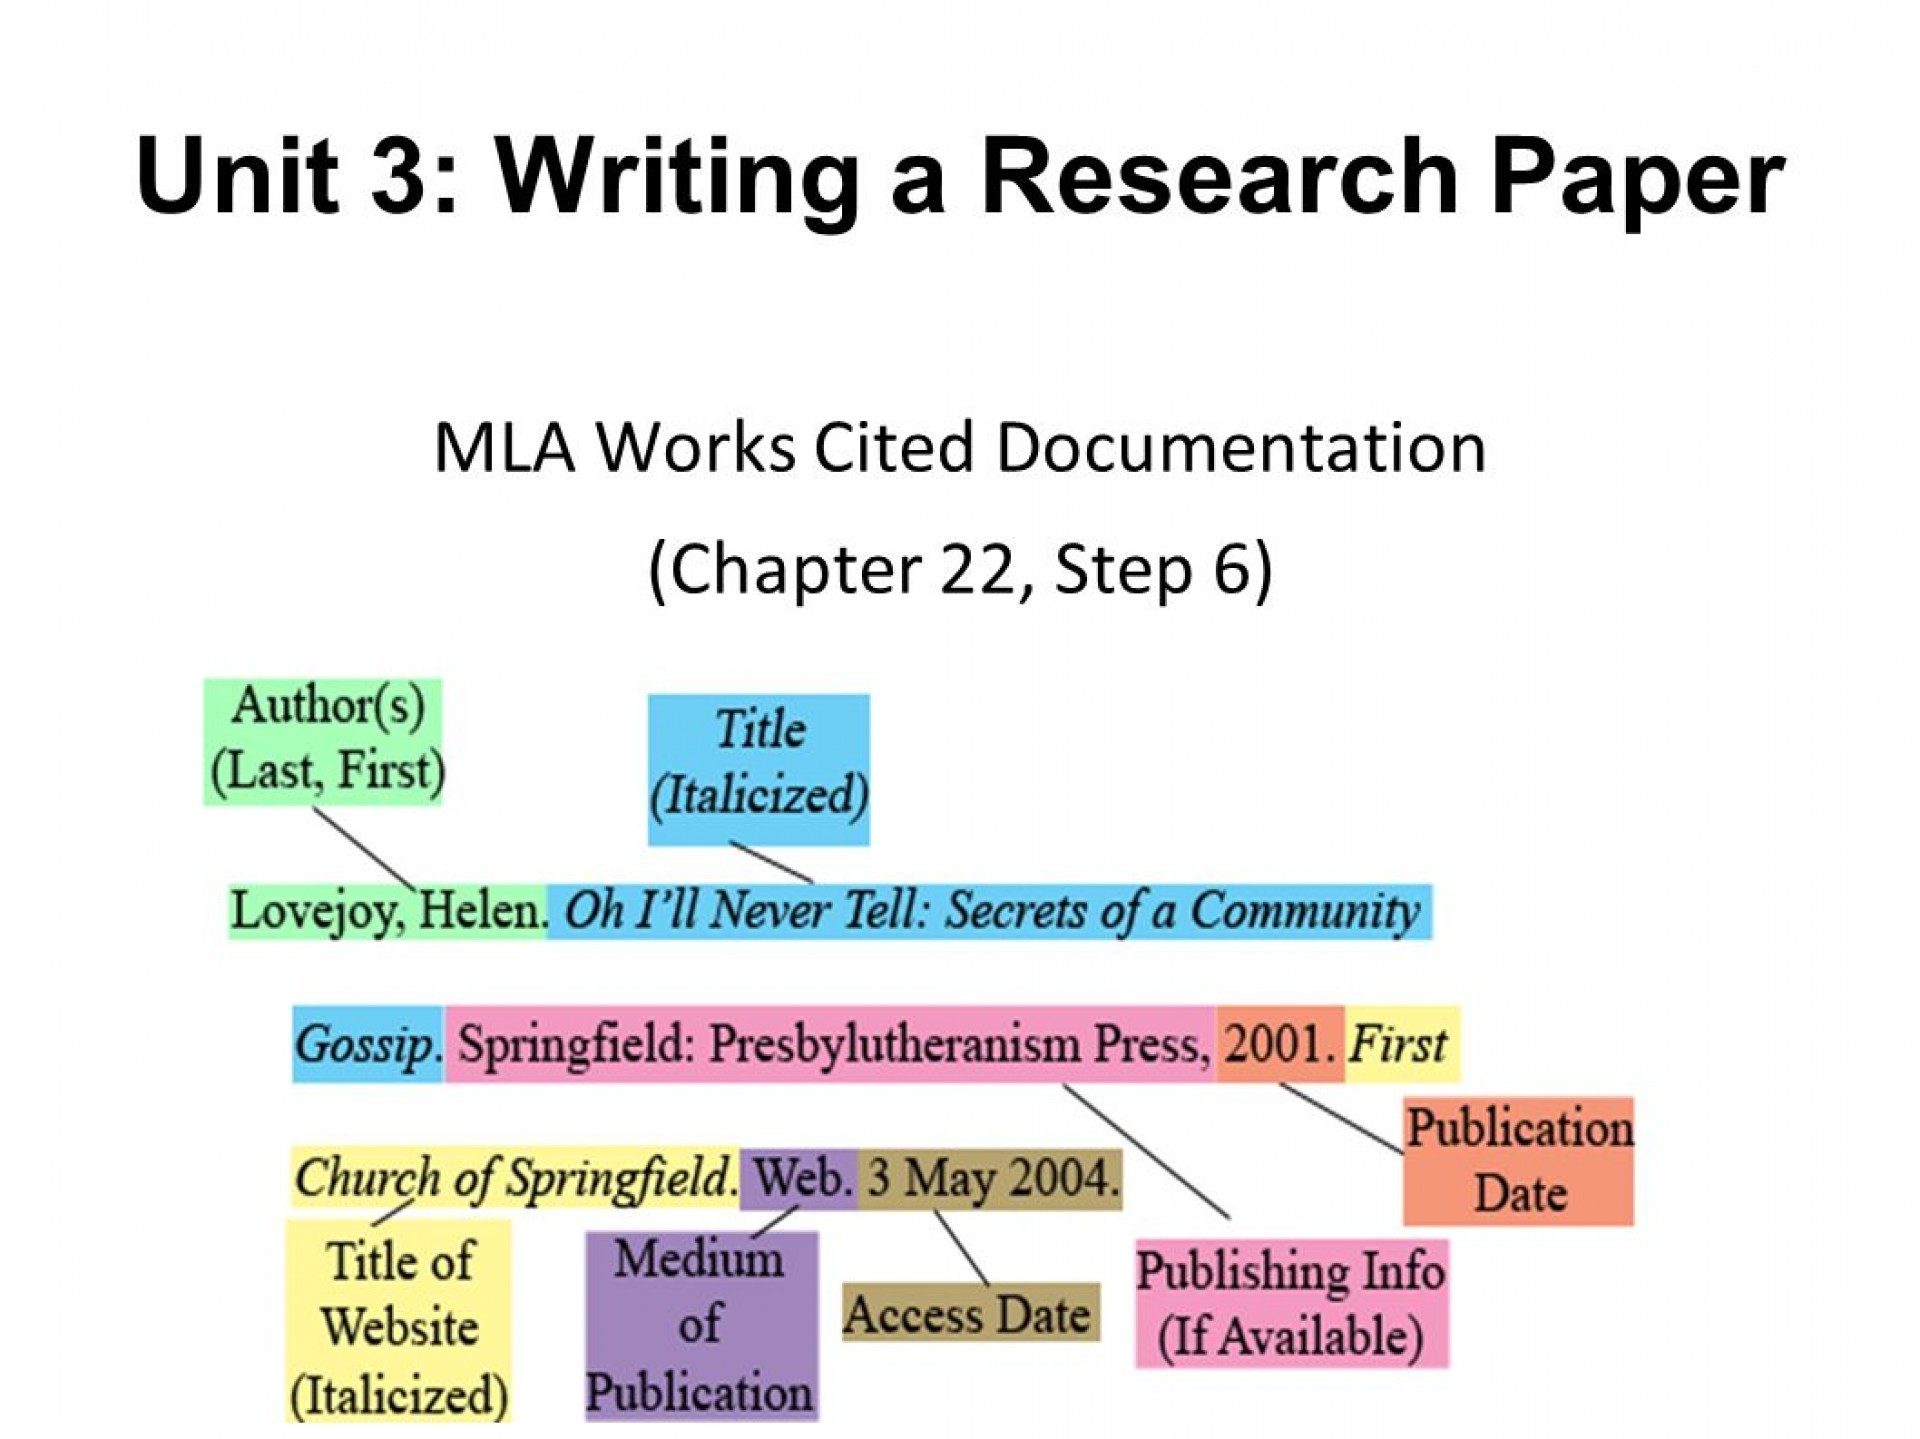 007 Research Paper Slide 1 How To Do Mla Works Cited Unusual For A Page 1920